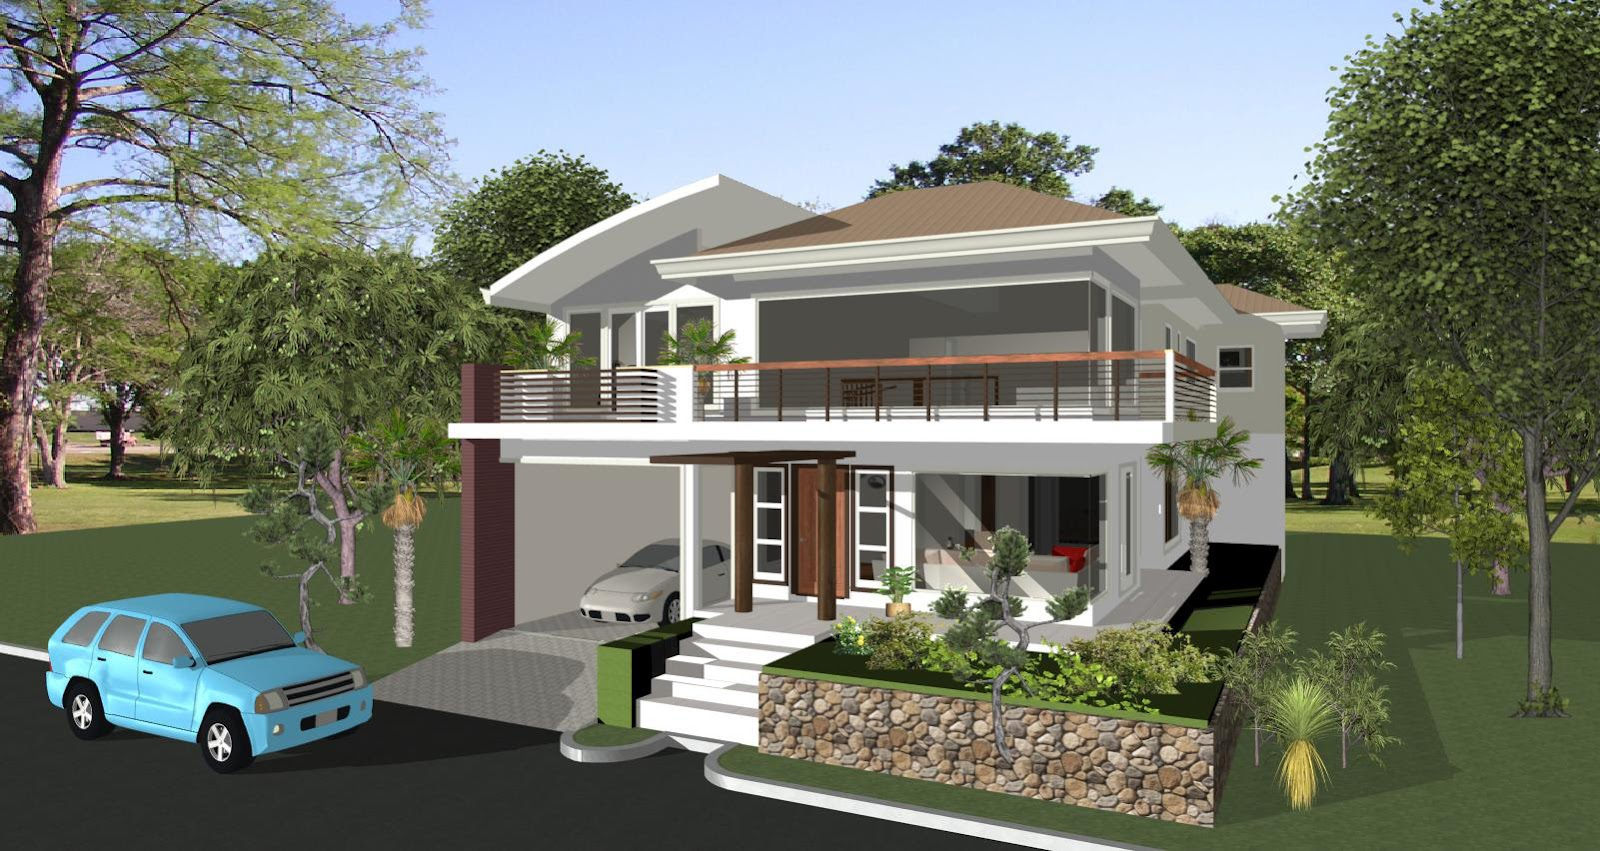 House designs in the philippines in iloilo by erecre group for House color design exterior philippines